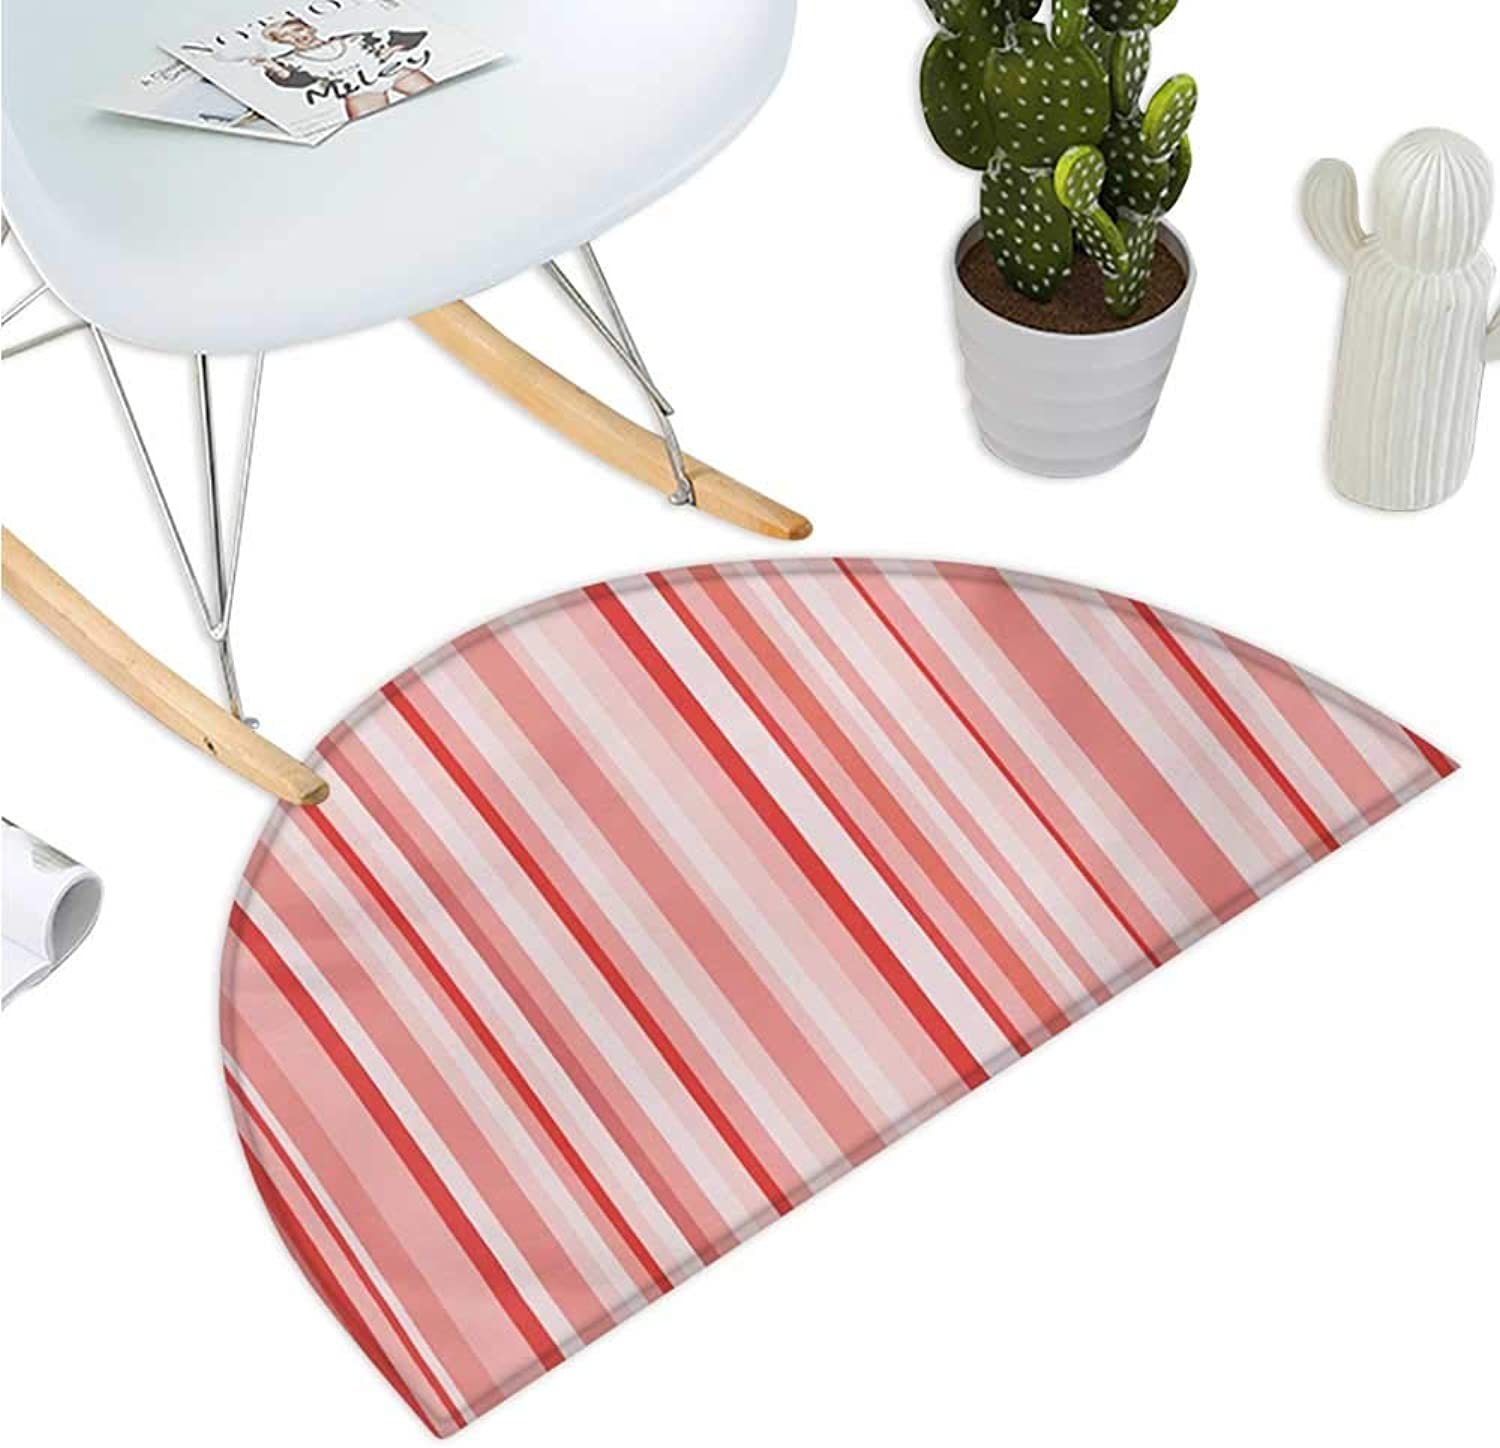 Coral Semicircular Cushion greenically Striped Retro Pattern in Soft colors Pinkish Old Fashioned Entry Door Mat H 35.4  xD 53.1  Coral Pale Pink White